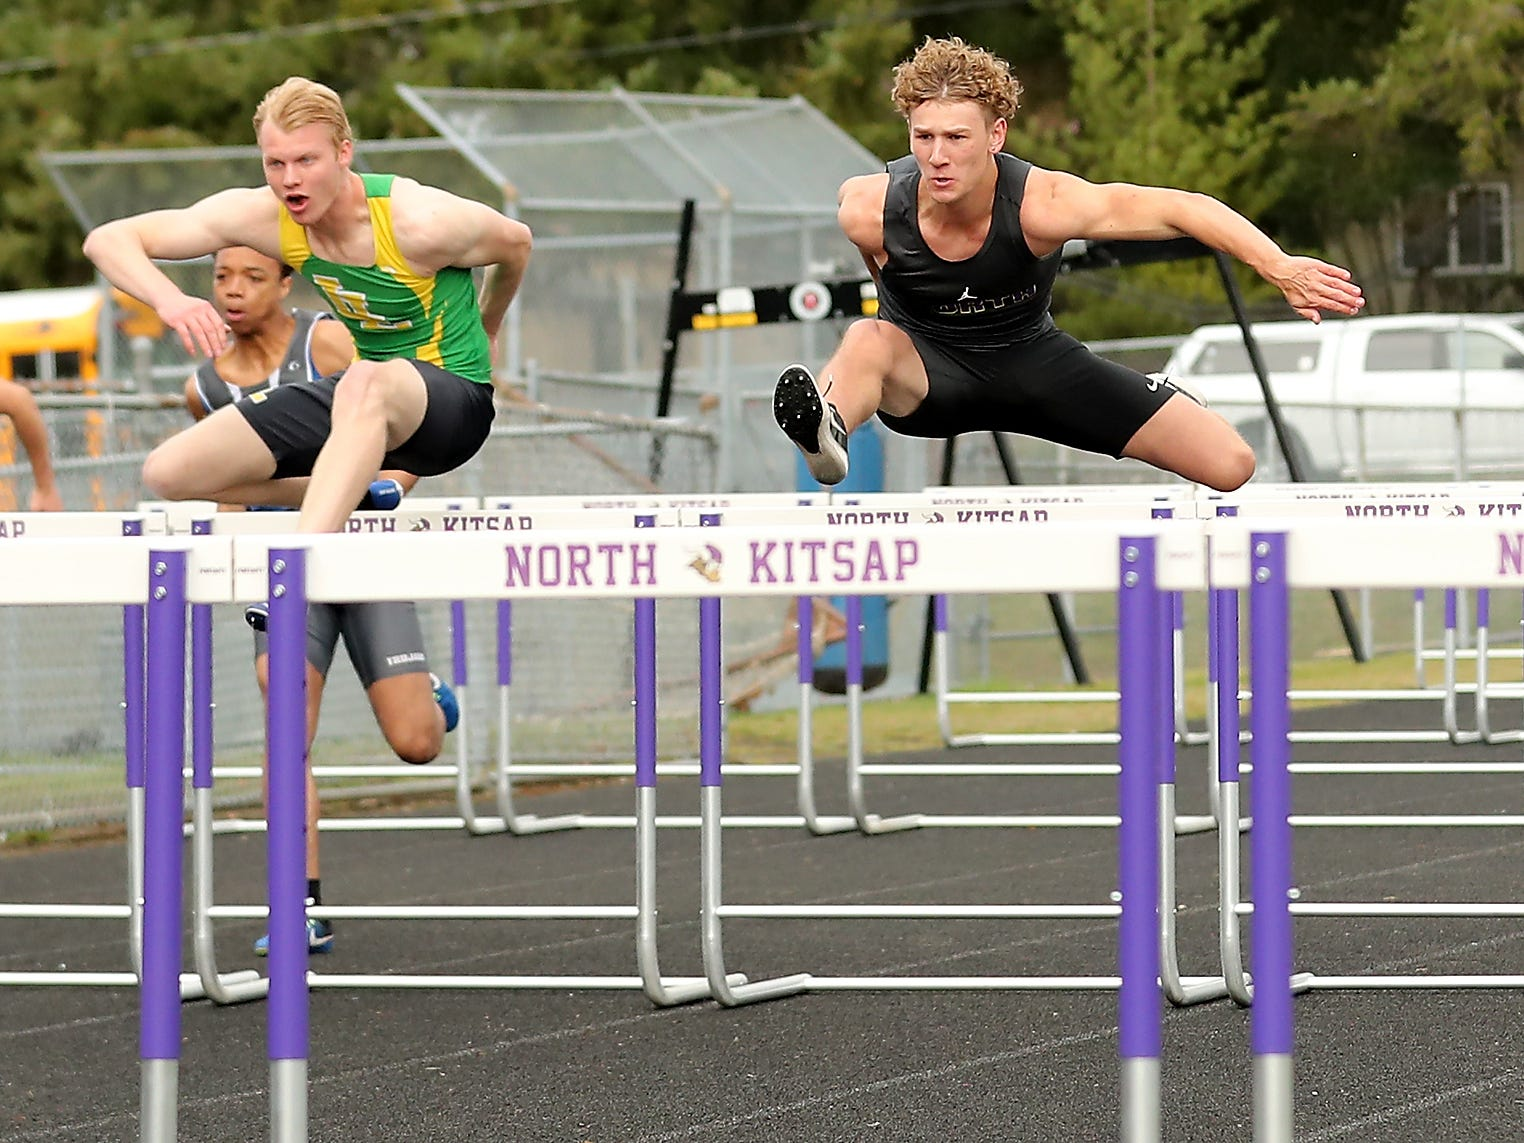 North Kitsap's Andrew Blackmore (center) clears a hurdle during the 110 Meter Hurdles at the Lil' Norway Invitational on Saturday, April13, 2019.